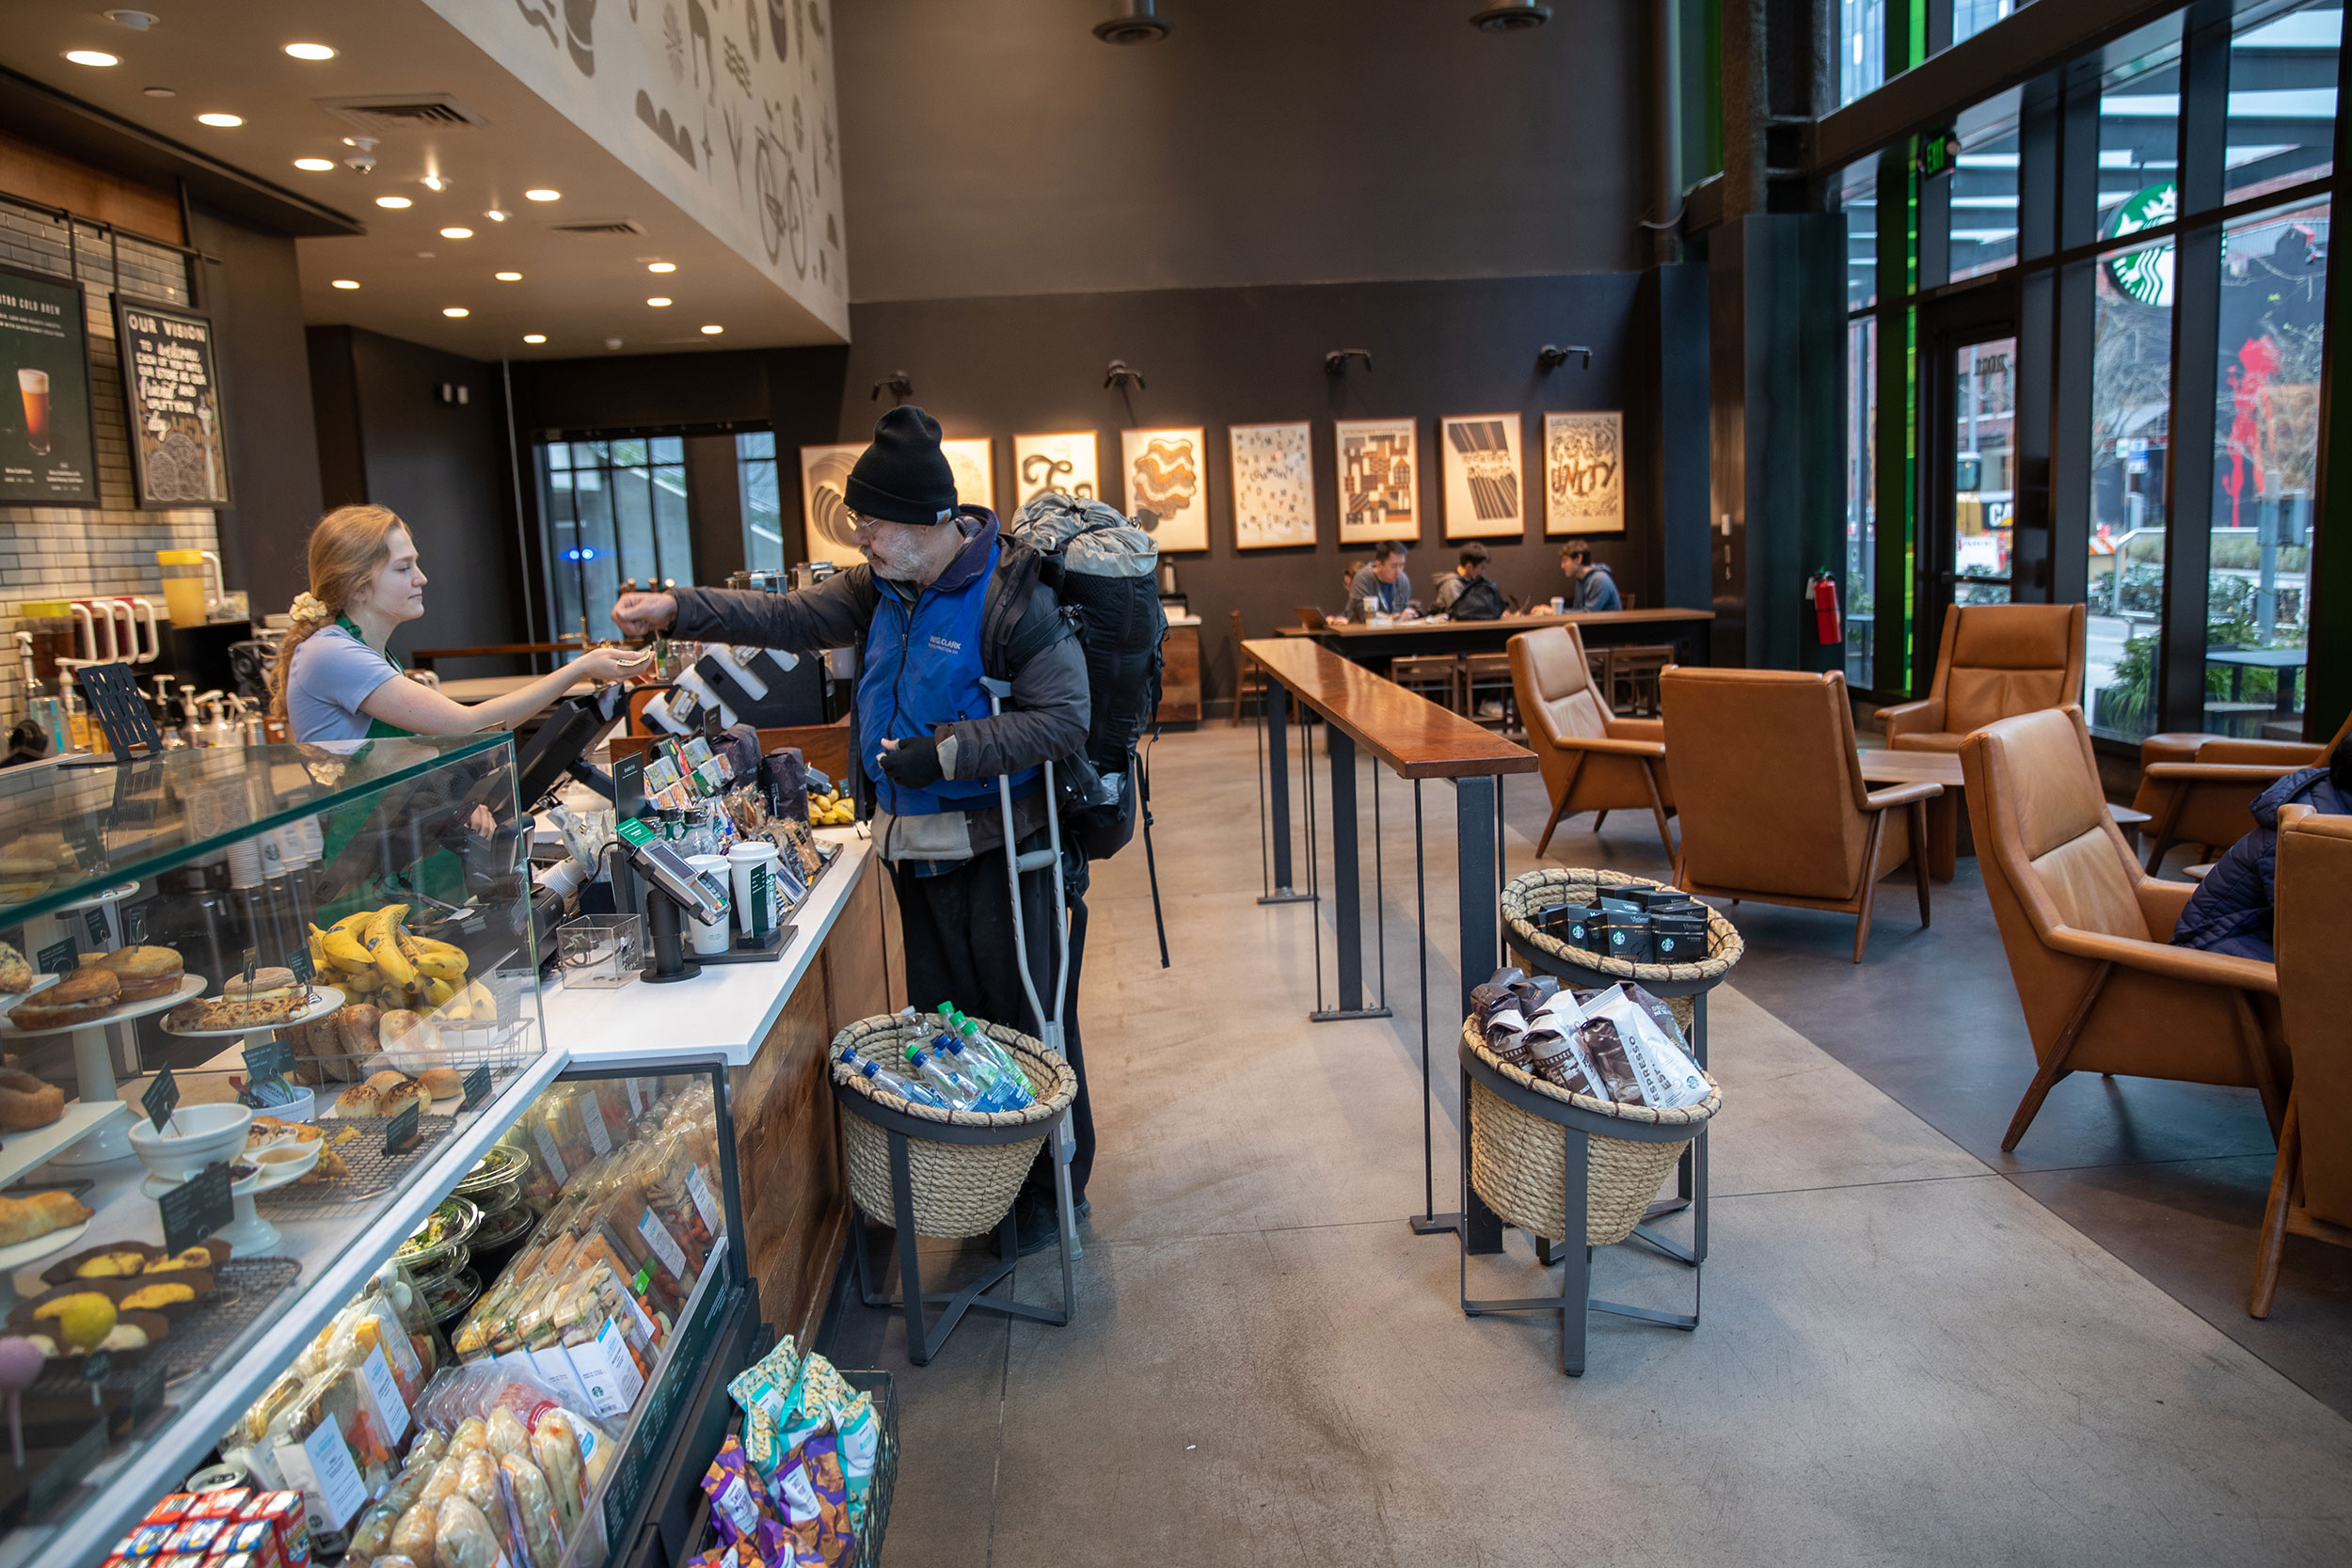 A person places an order at a Starbucks coffee shop in downtown Seattle on March 10.